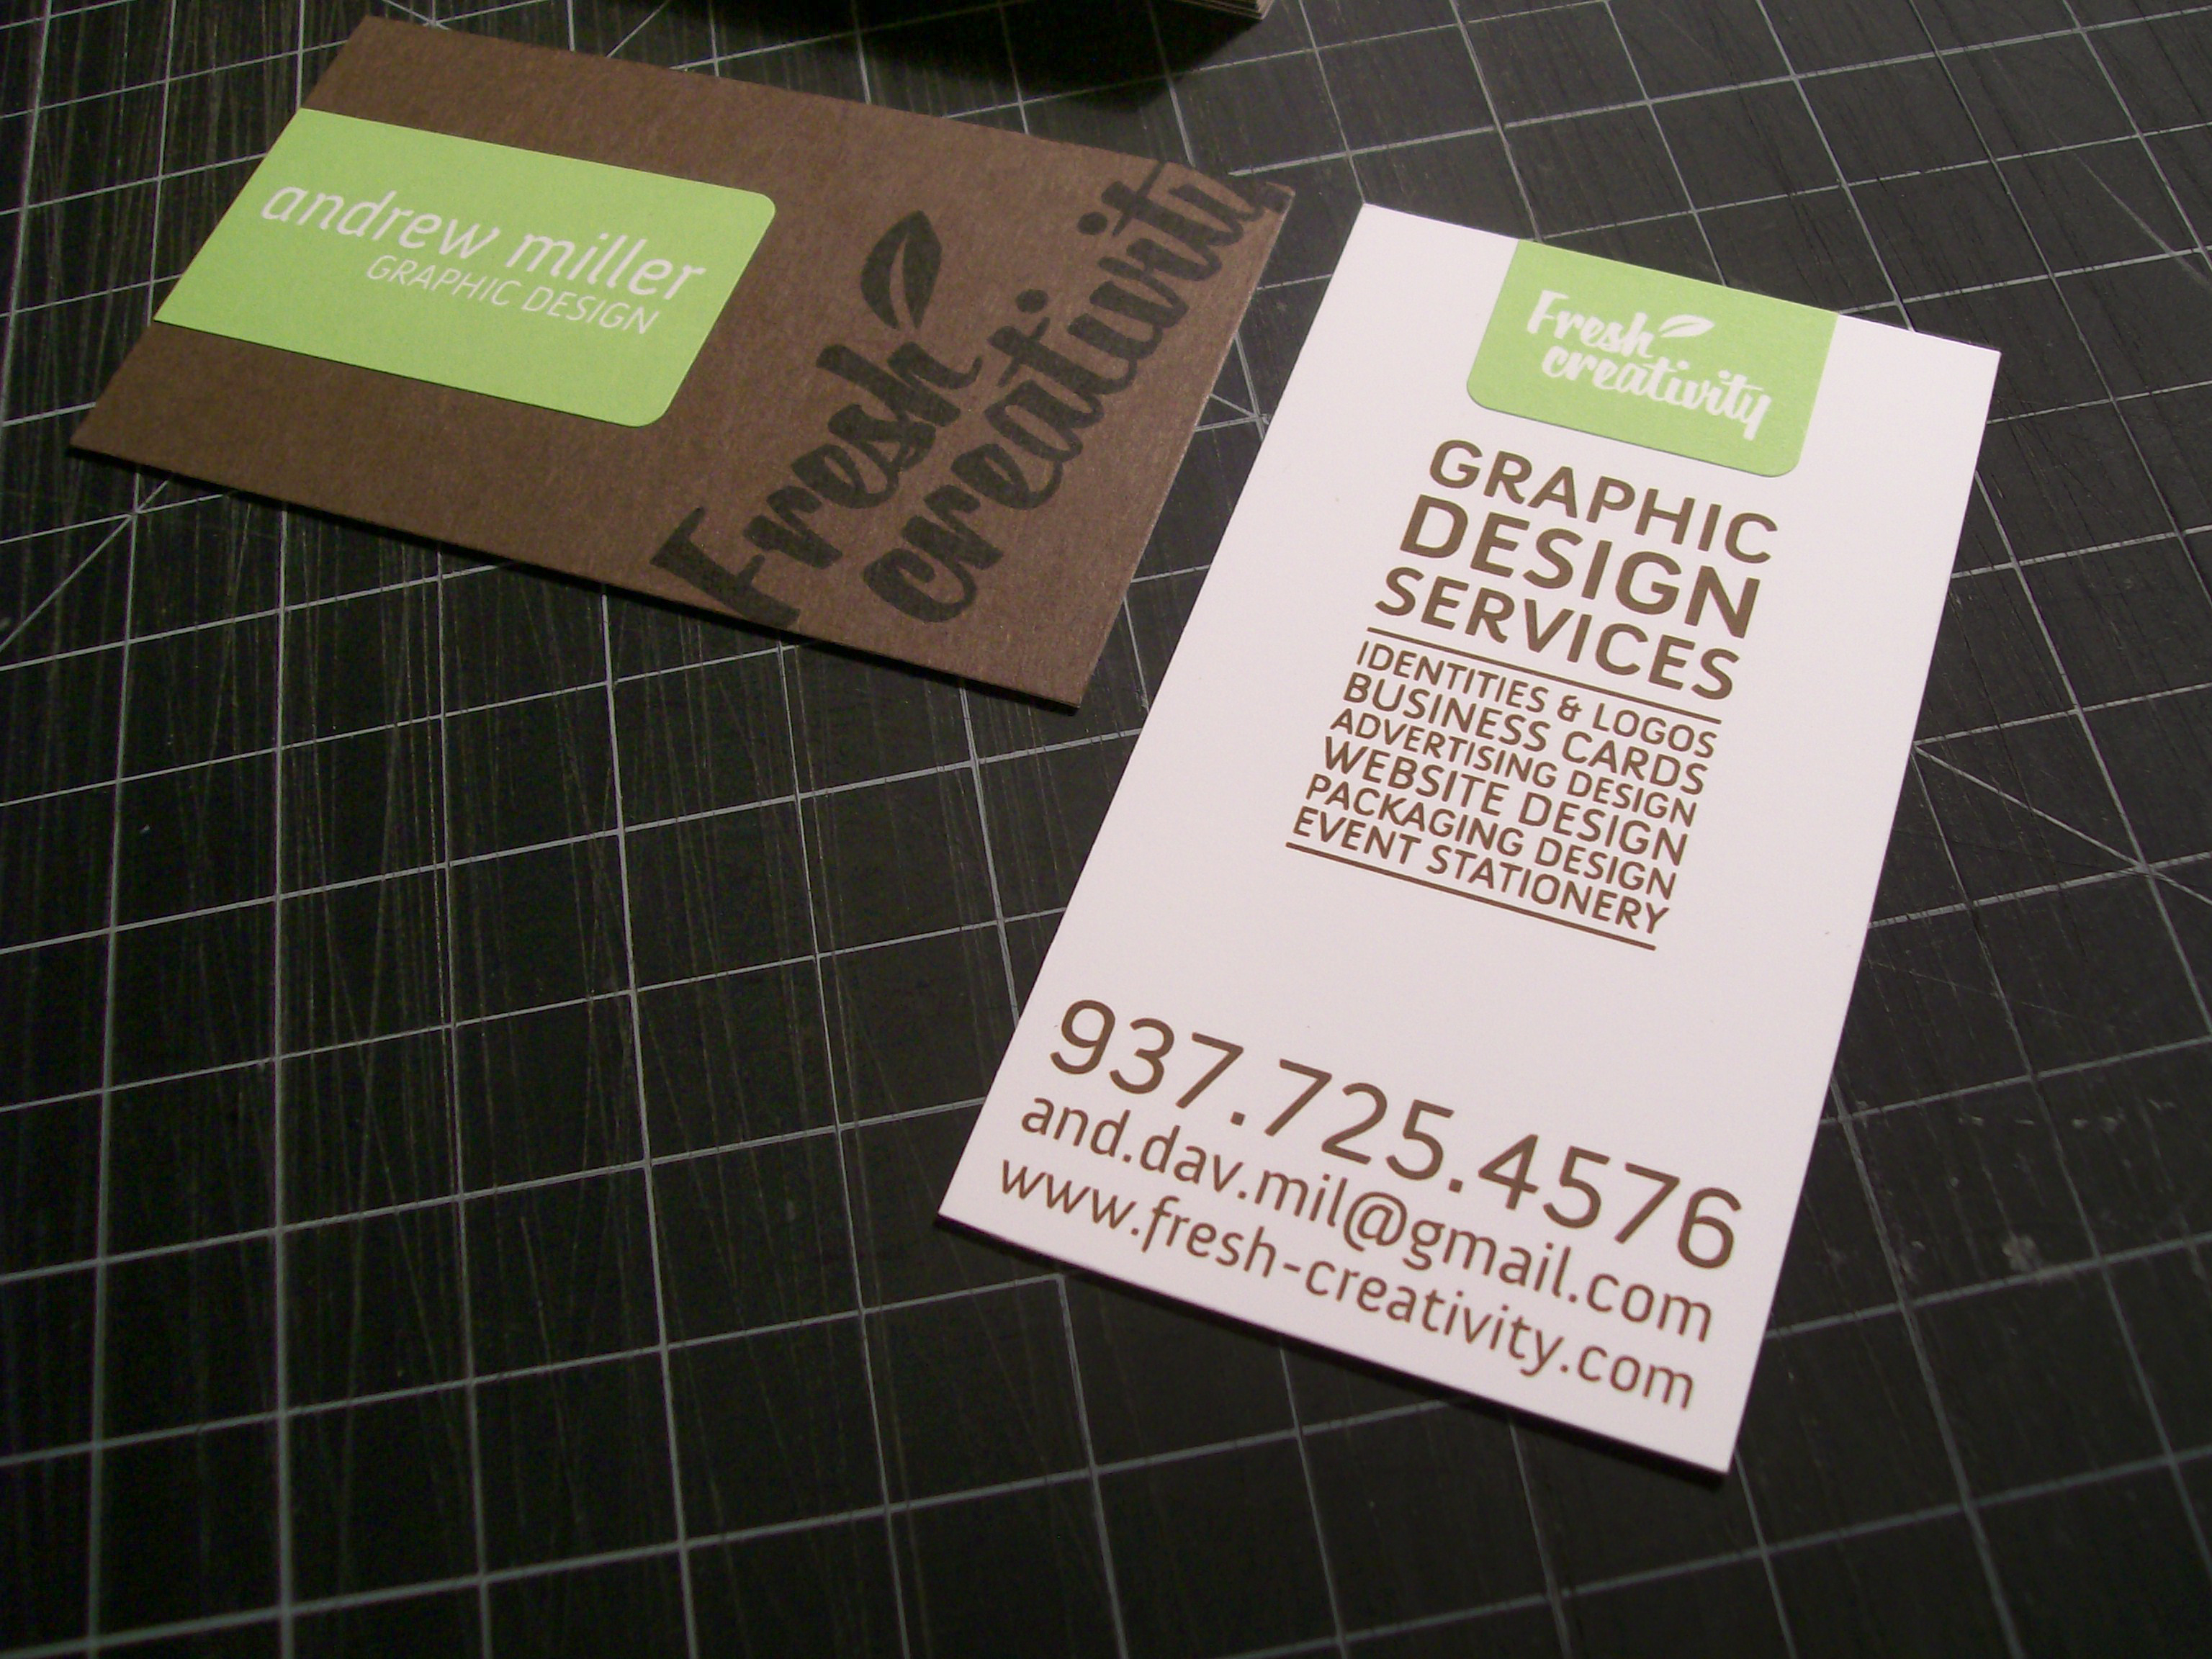 andrew miller graphic designer self promotional business cards